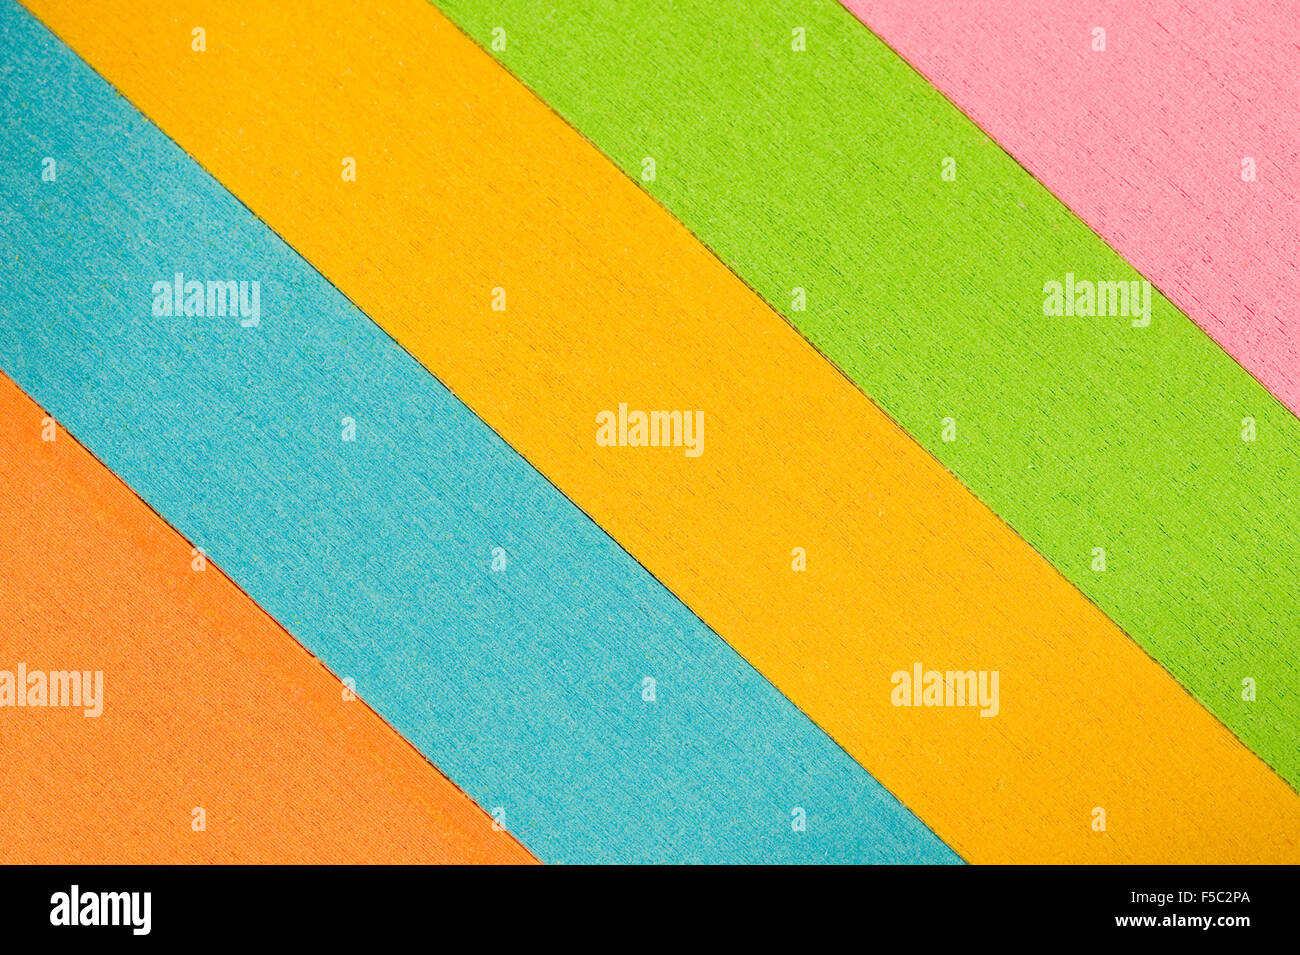 Slanted Multi-colored Stacks of Paper Background - Stock Image